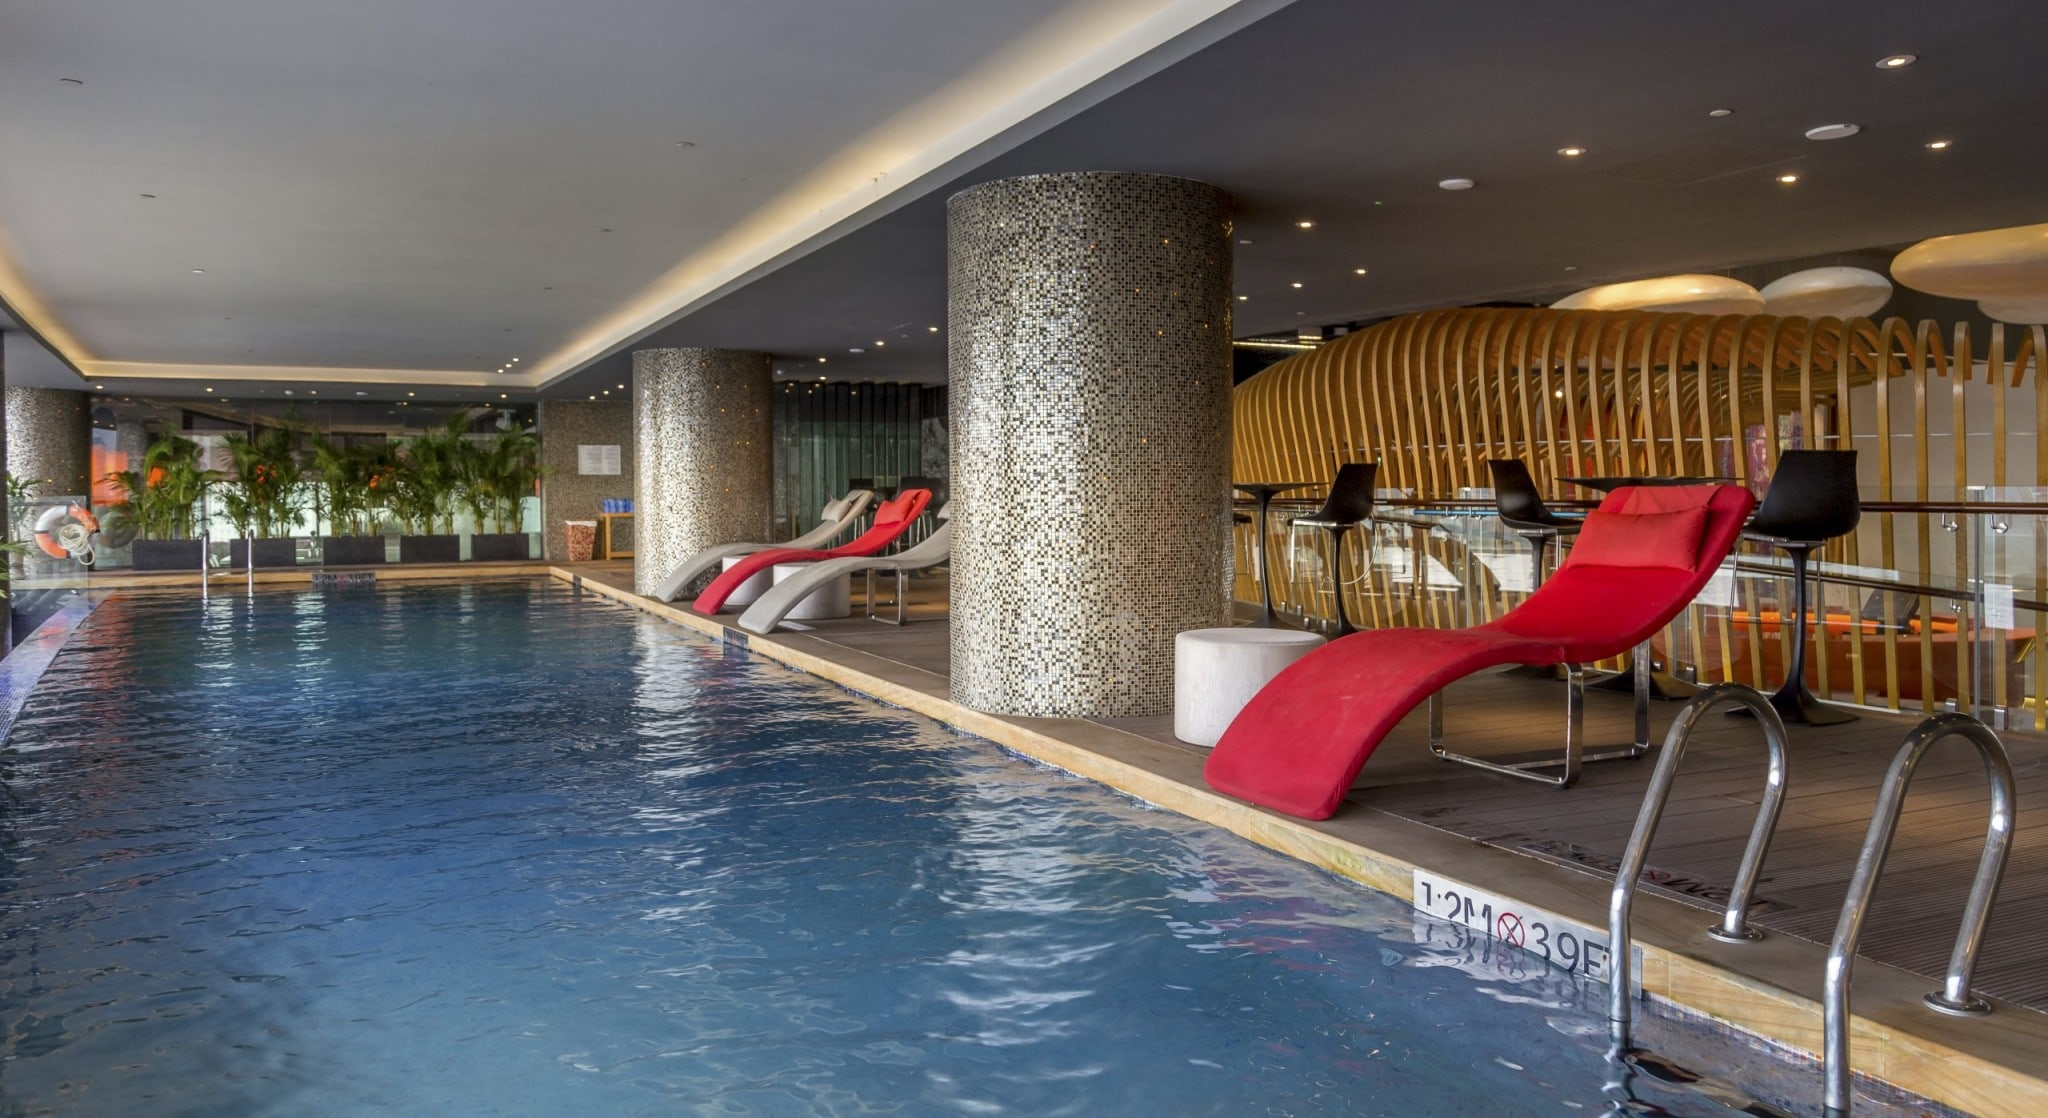 VIETNAM - Combine business & leisure at Le Meridien Saigon Hotel – Chris Travel Blog